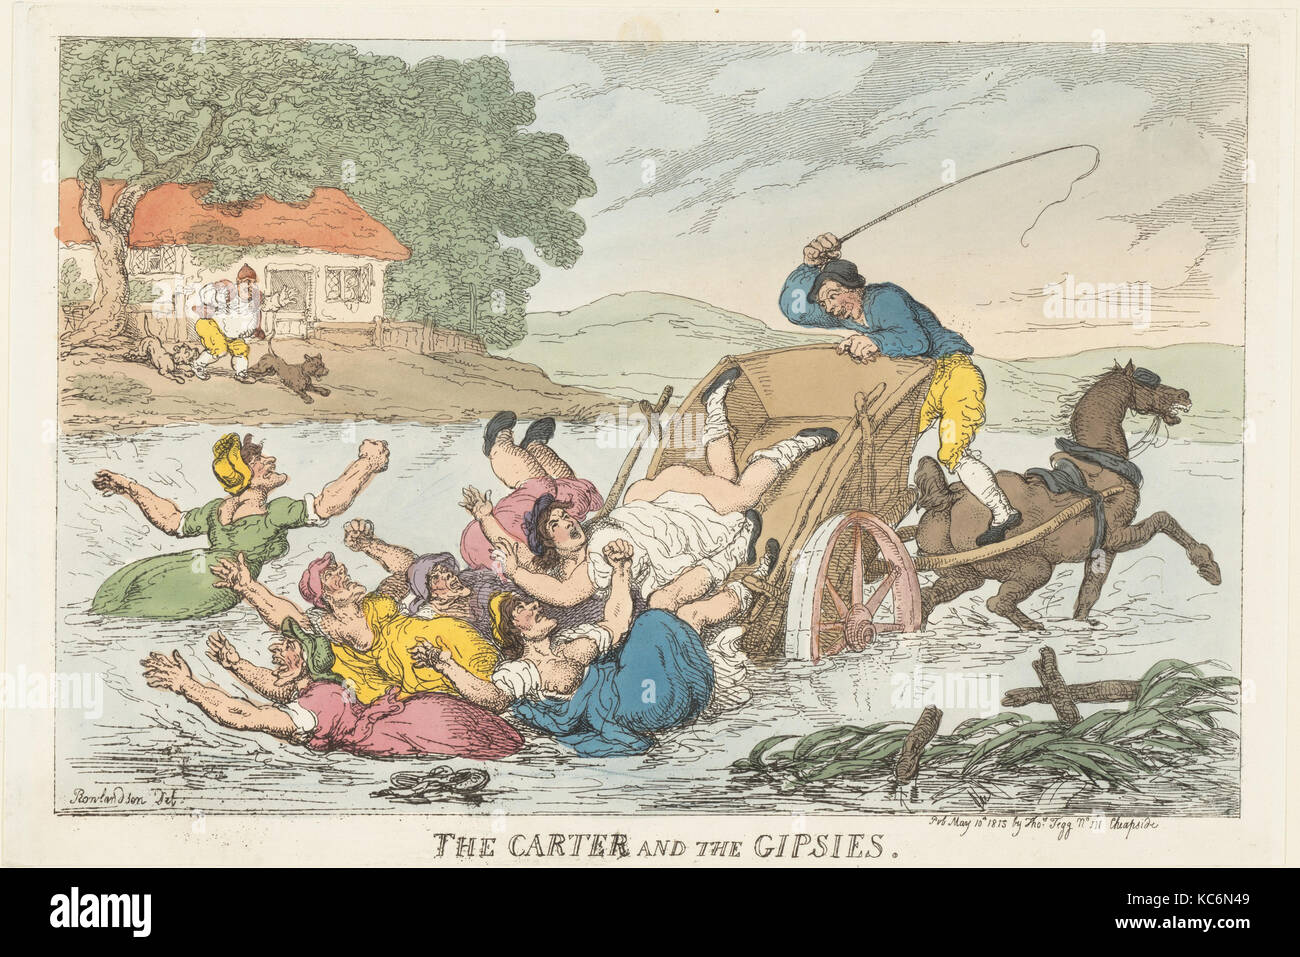 The Carter and the Gipsies, Thomas Rowlandson, May 10, 1815 - Stock Image